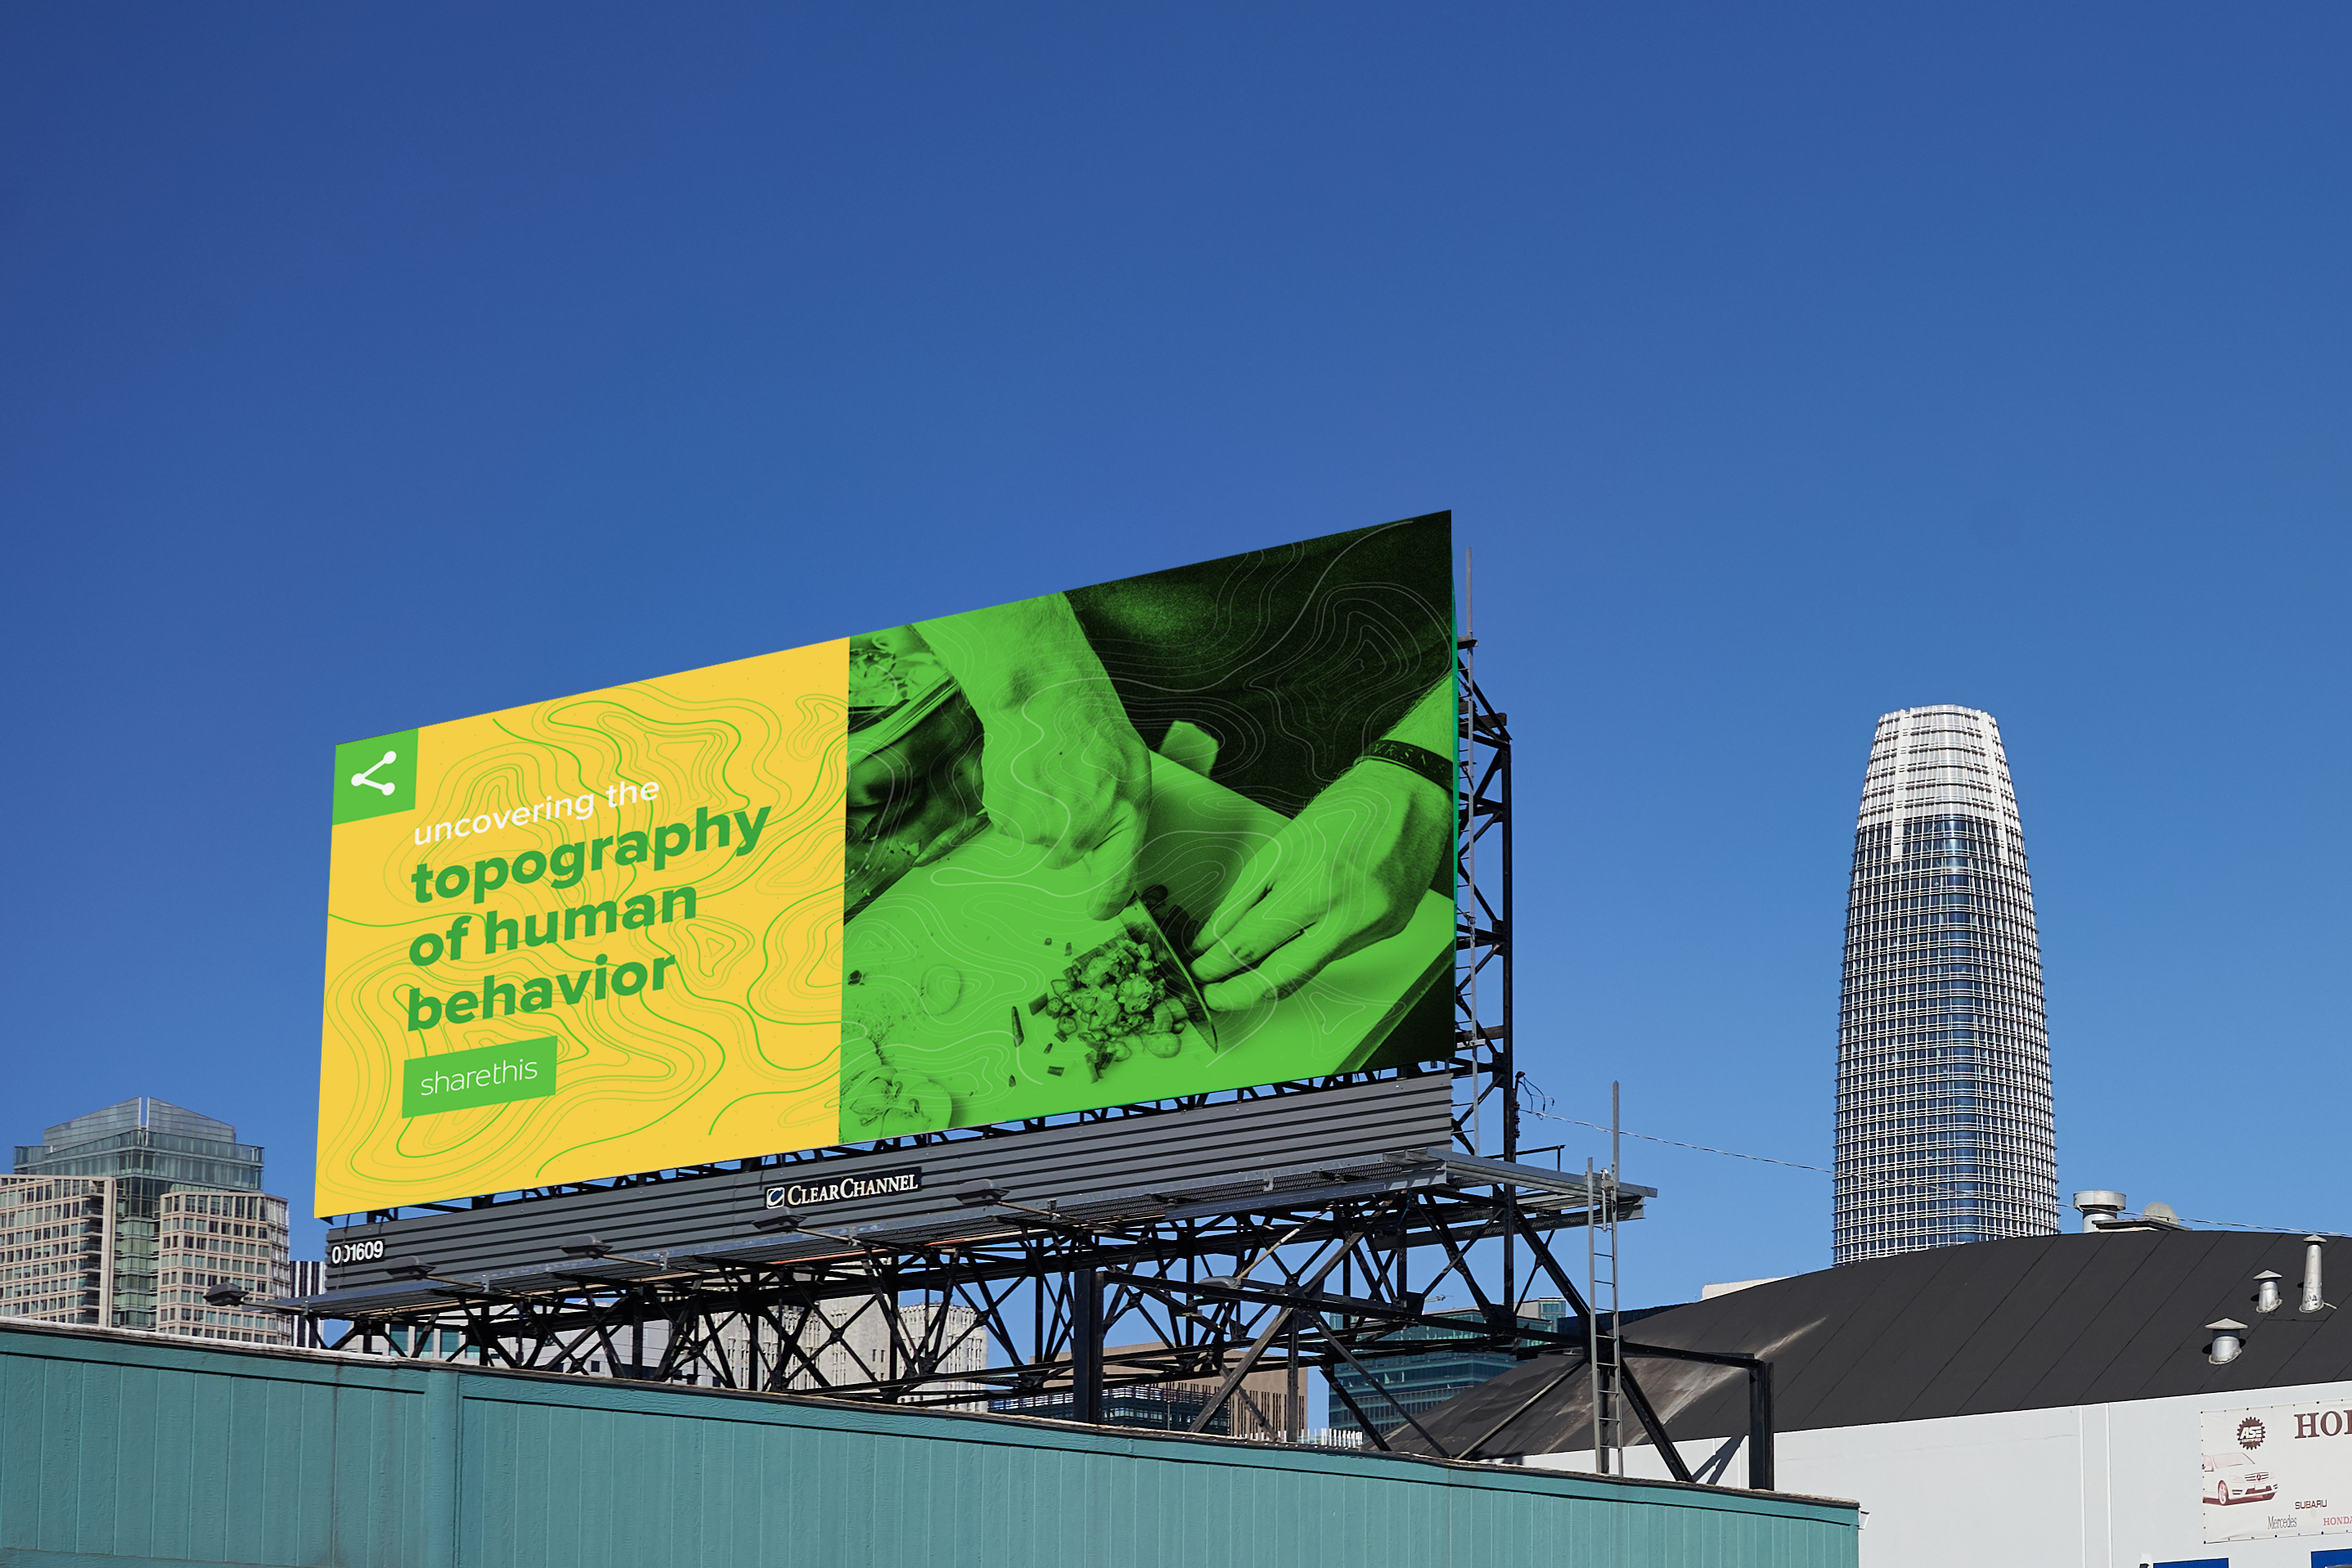 ShareThis Billboard